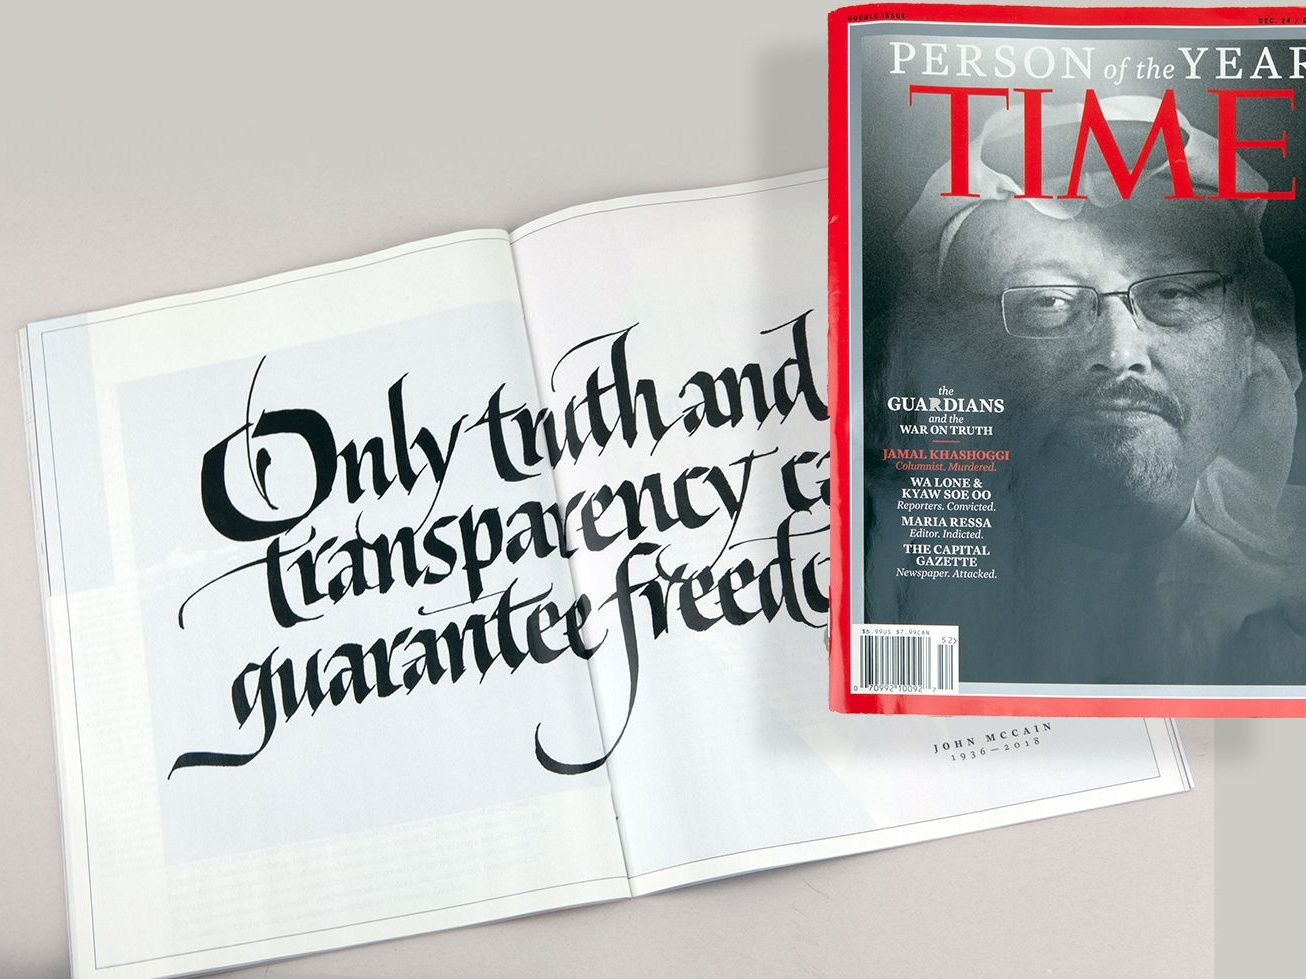 TIME magazine, Year-end, Person of the Year Issue calligraphy pen john stevens calligrapher